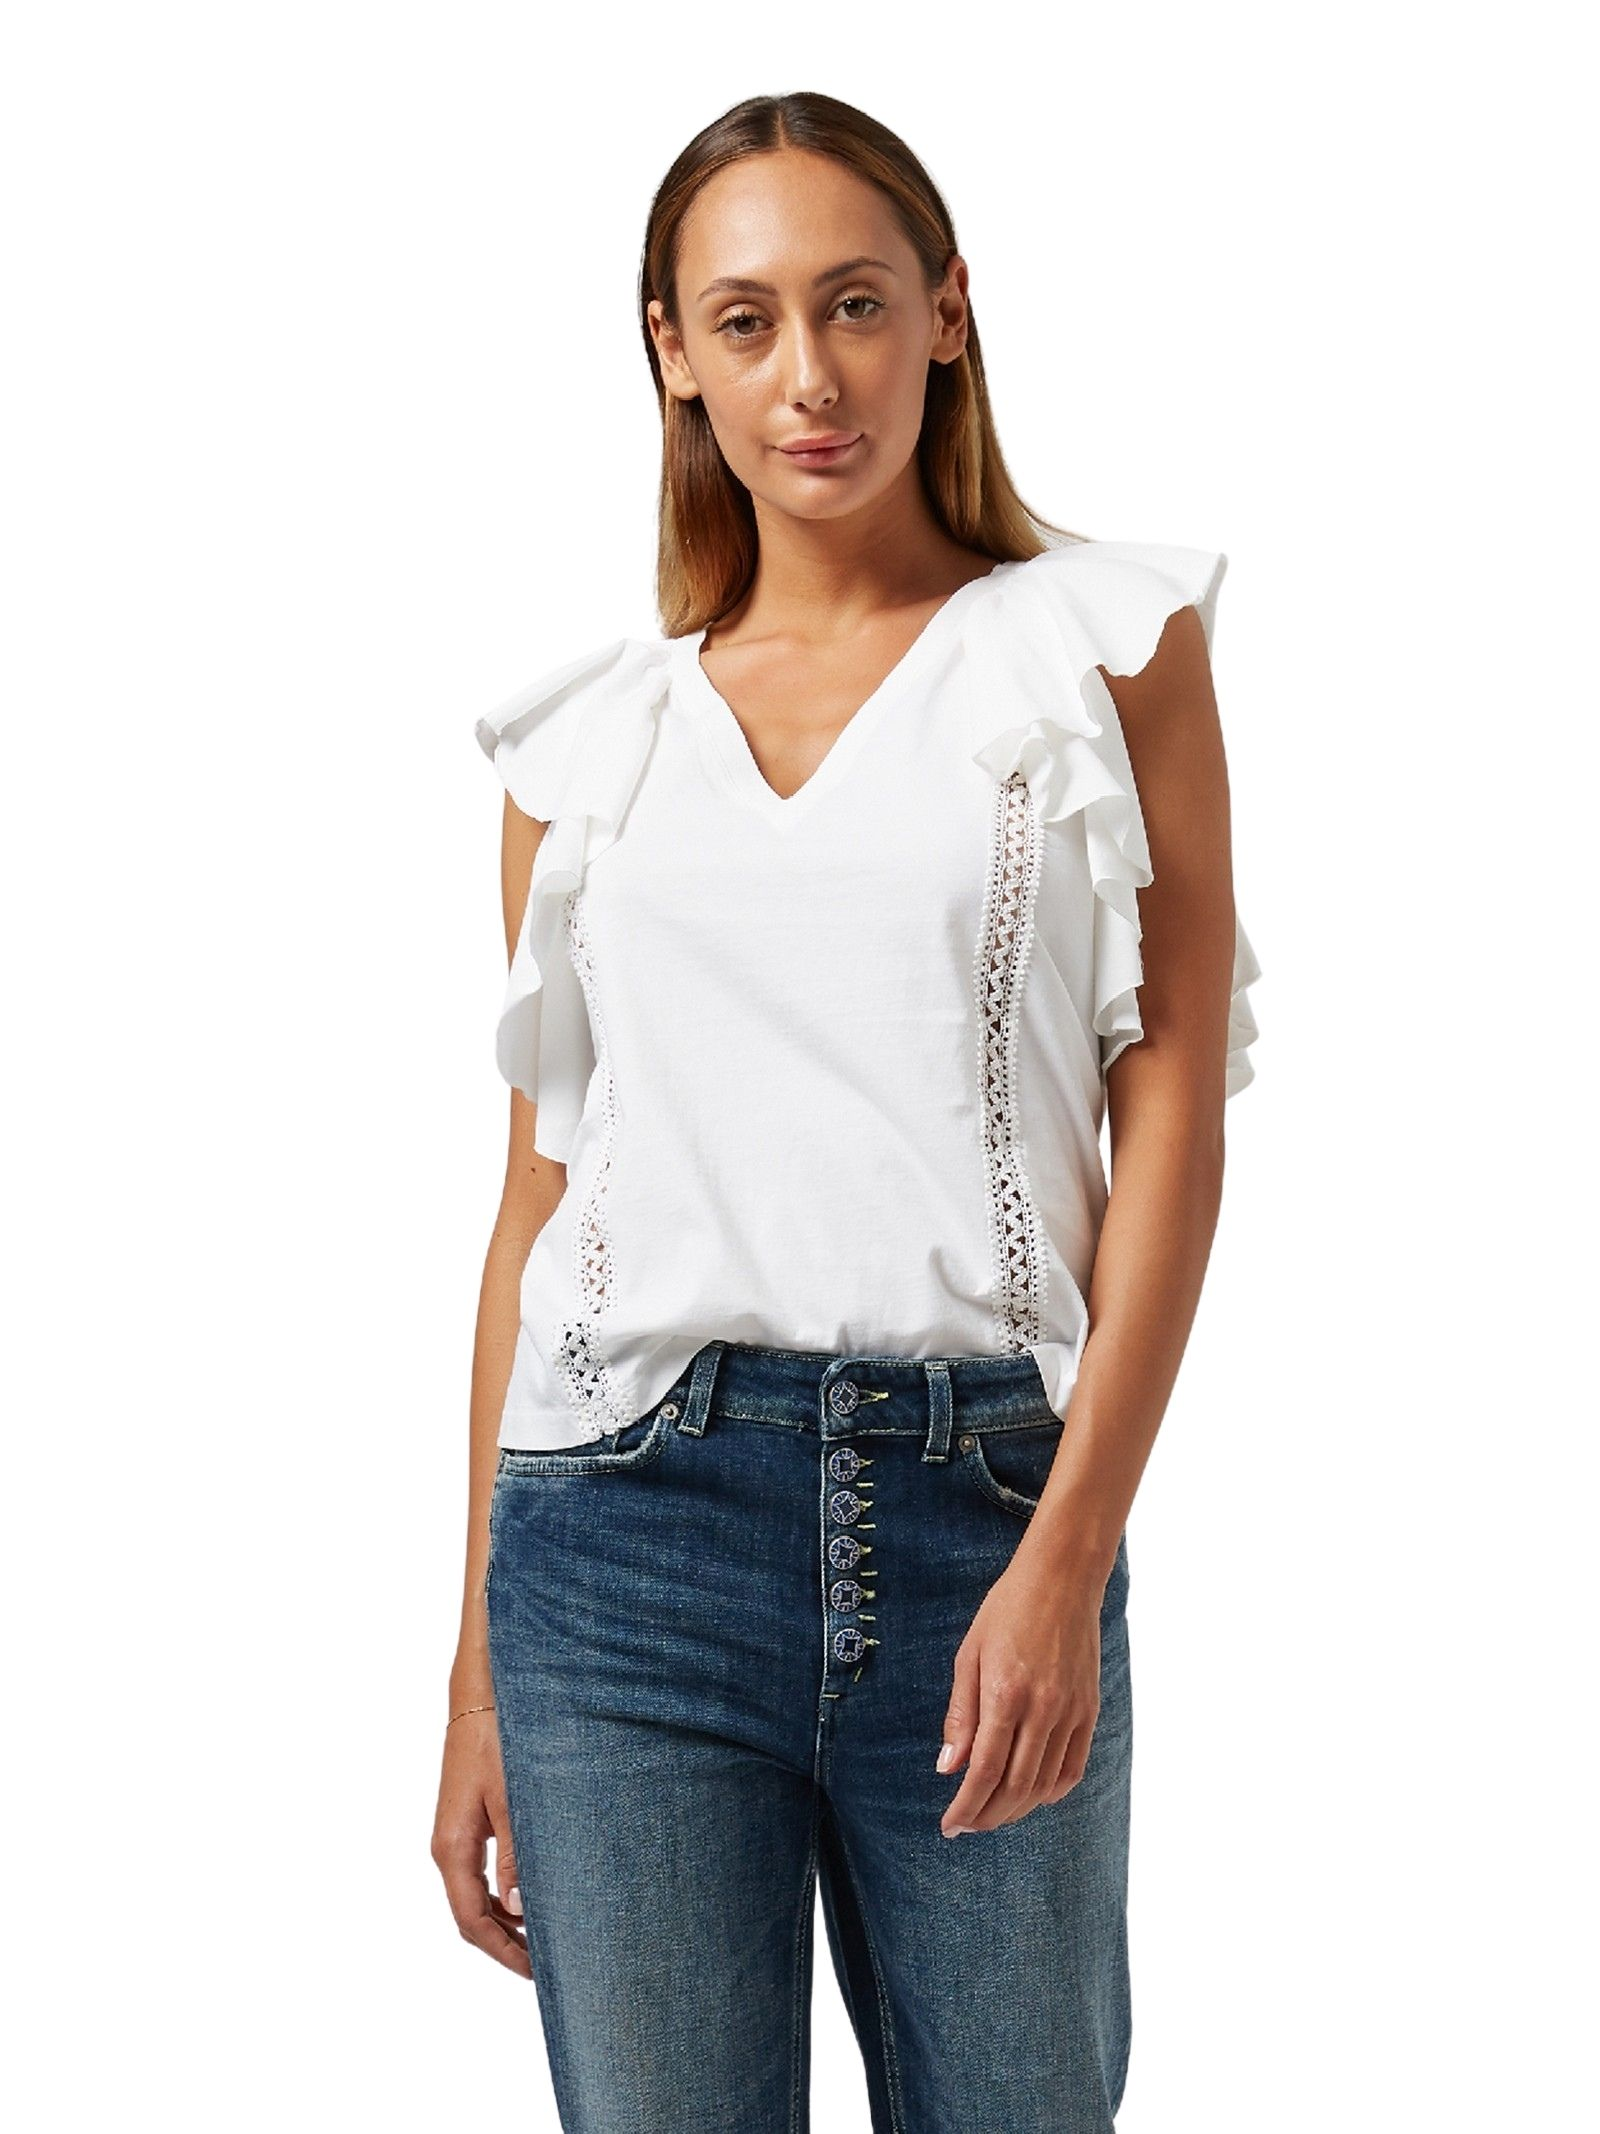 Top bianco con scollatura a V DONDUP   Top   S871 JF0290DPTD 000